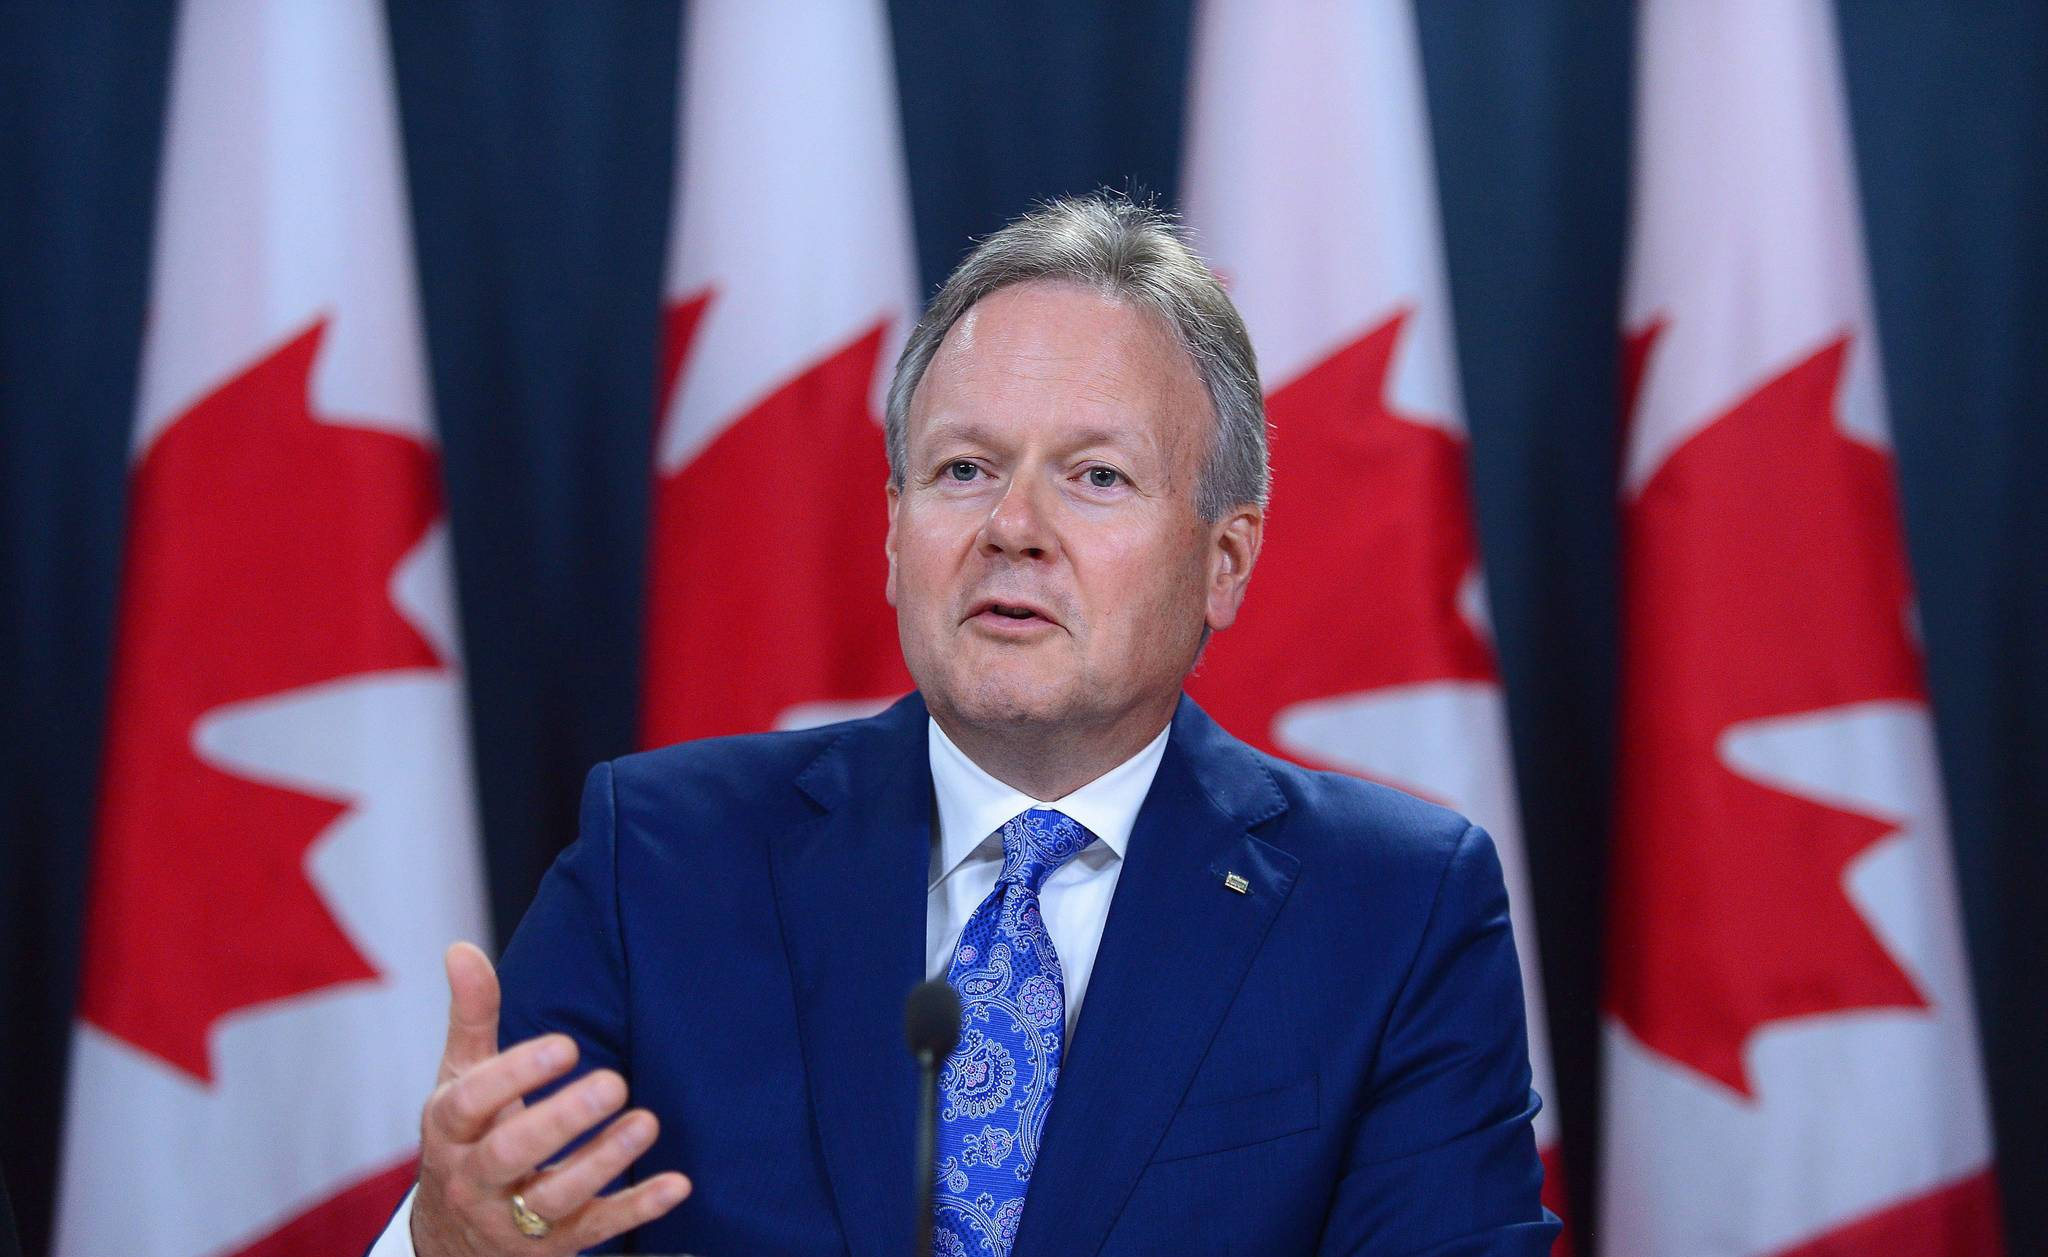 Stephen Poloz, Governor of the Bank of Canada, holds a press conference at the National Press Theatre in Ottawa on Wednesday, June 8, 2017. With the Bank of Canada nearing its next policy decision, governor Stephen Poloz is reiterating his message that his 2015 interest-rate cuts appear to have done their job. THE CANADIAN PRESS/Sean Kilpatrick